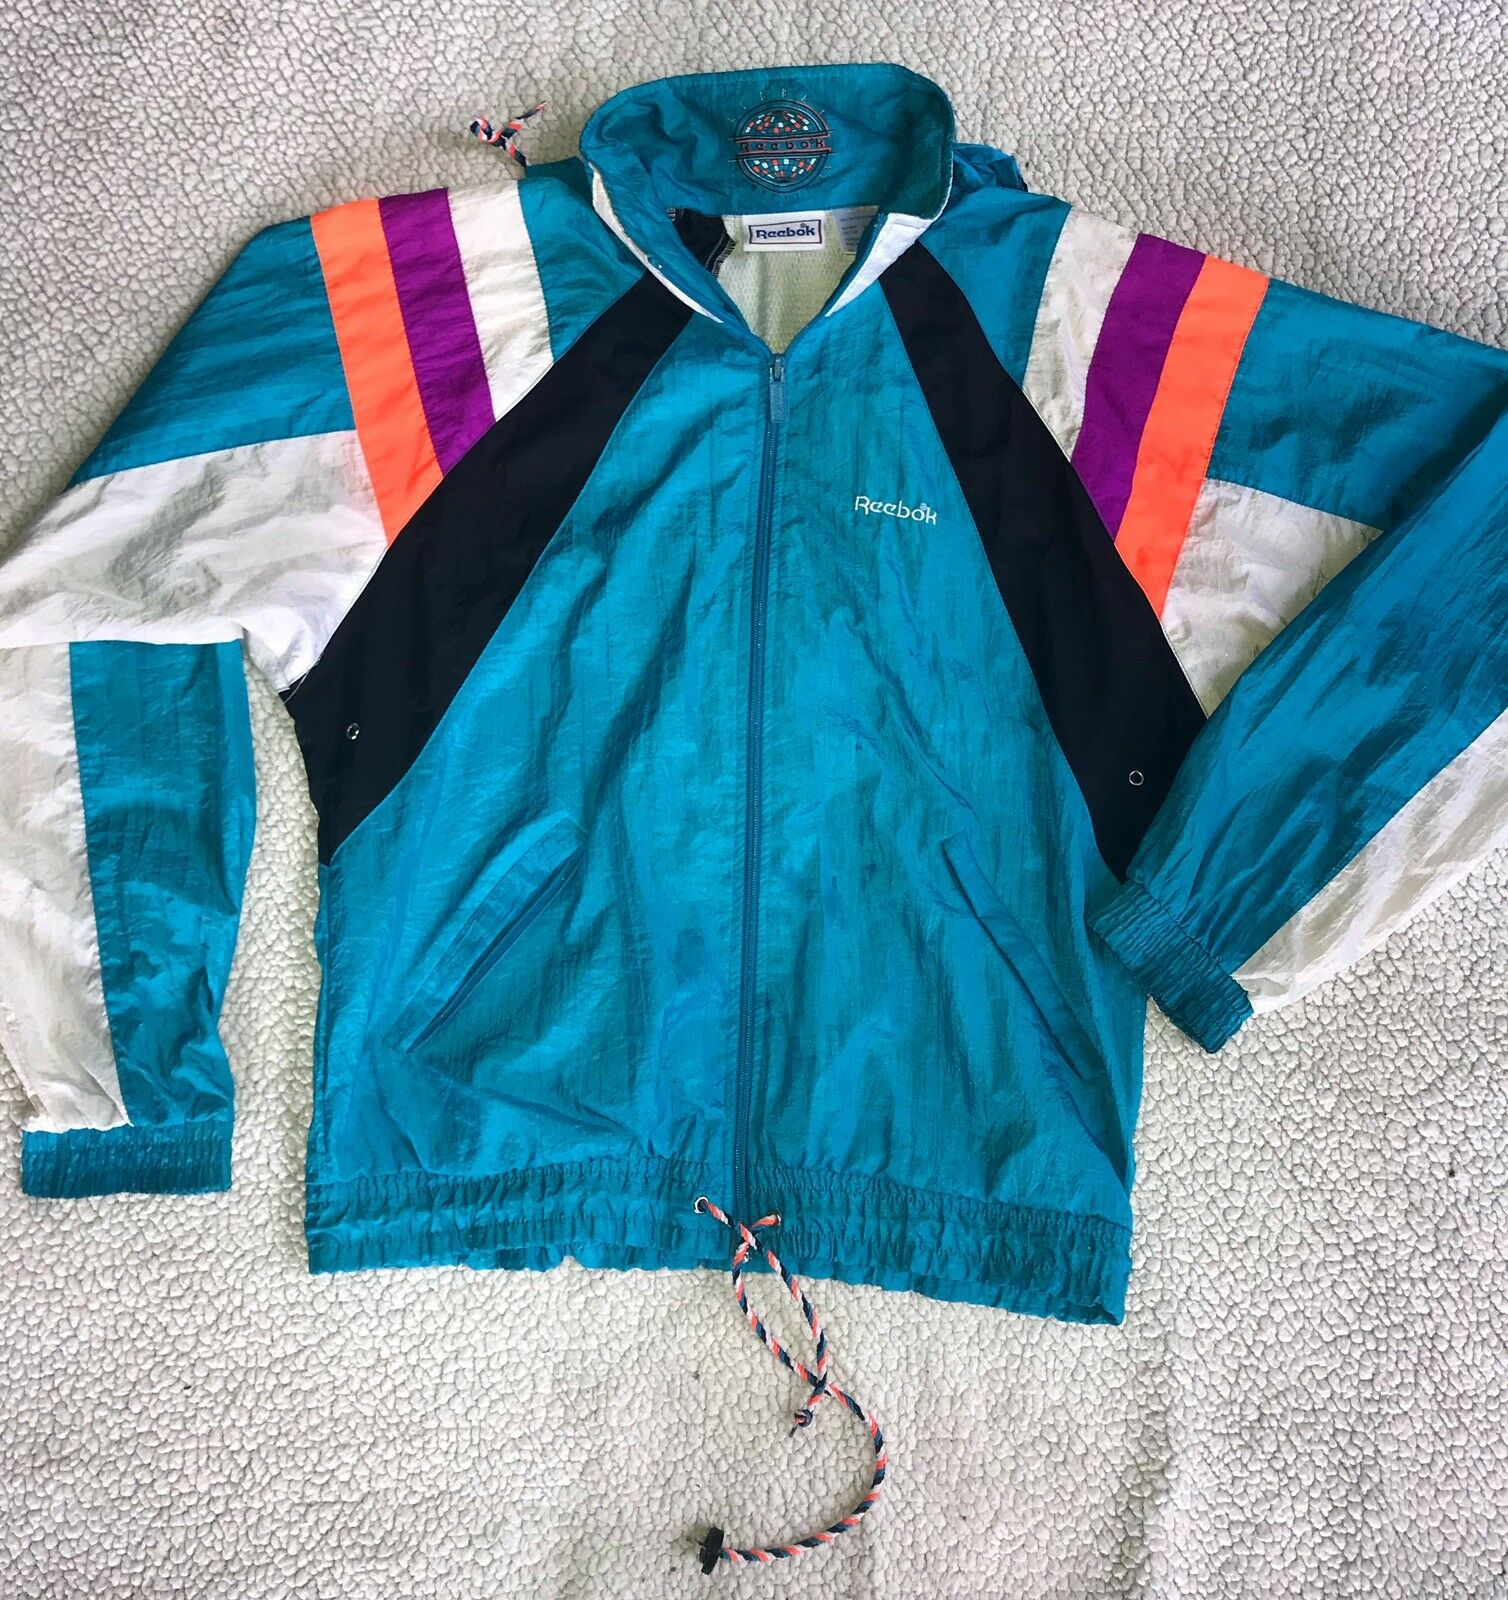 VTG REEBOK GLOBAL COMPETITION WINDBREAKER WOMANS SIZE SMALL TEAL TEAL TEAL STRIPED 90s 004d47